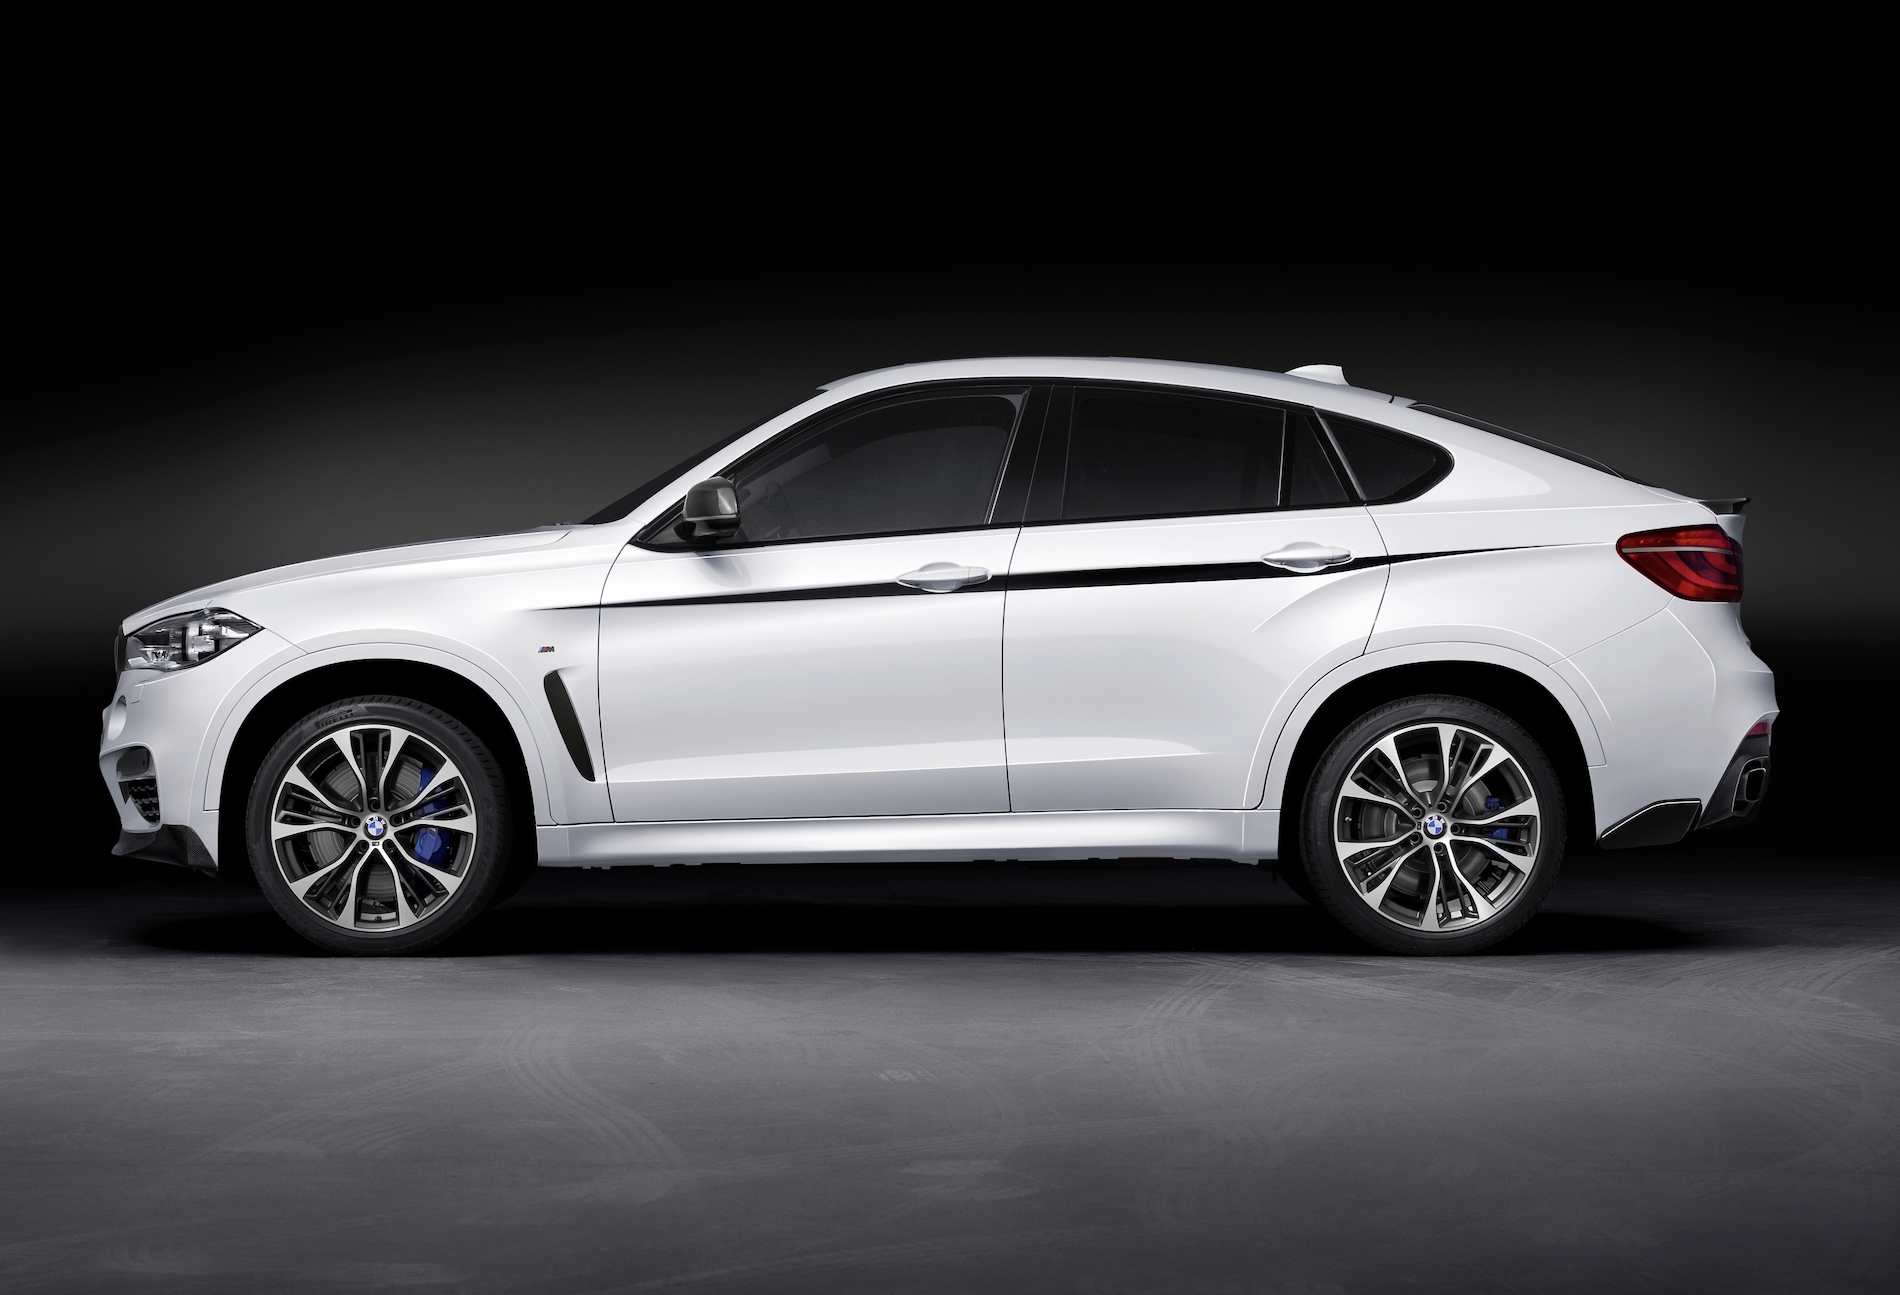 New Bmw M Performance Parts For The Bmw X6 F16